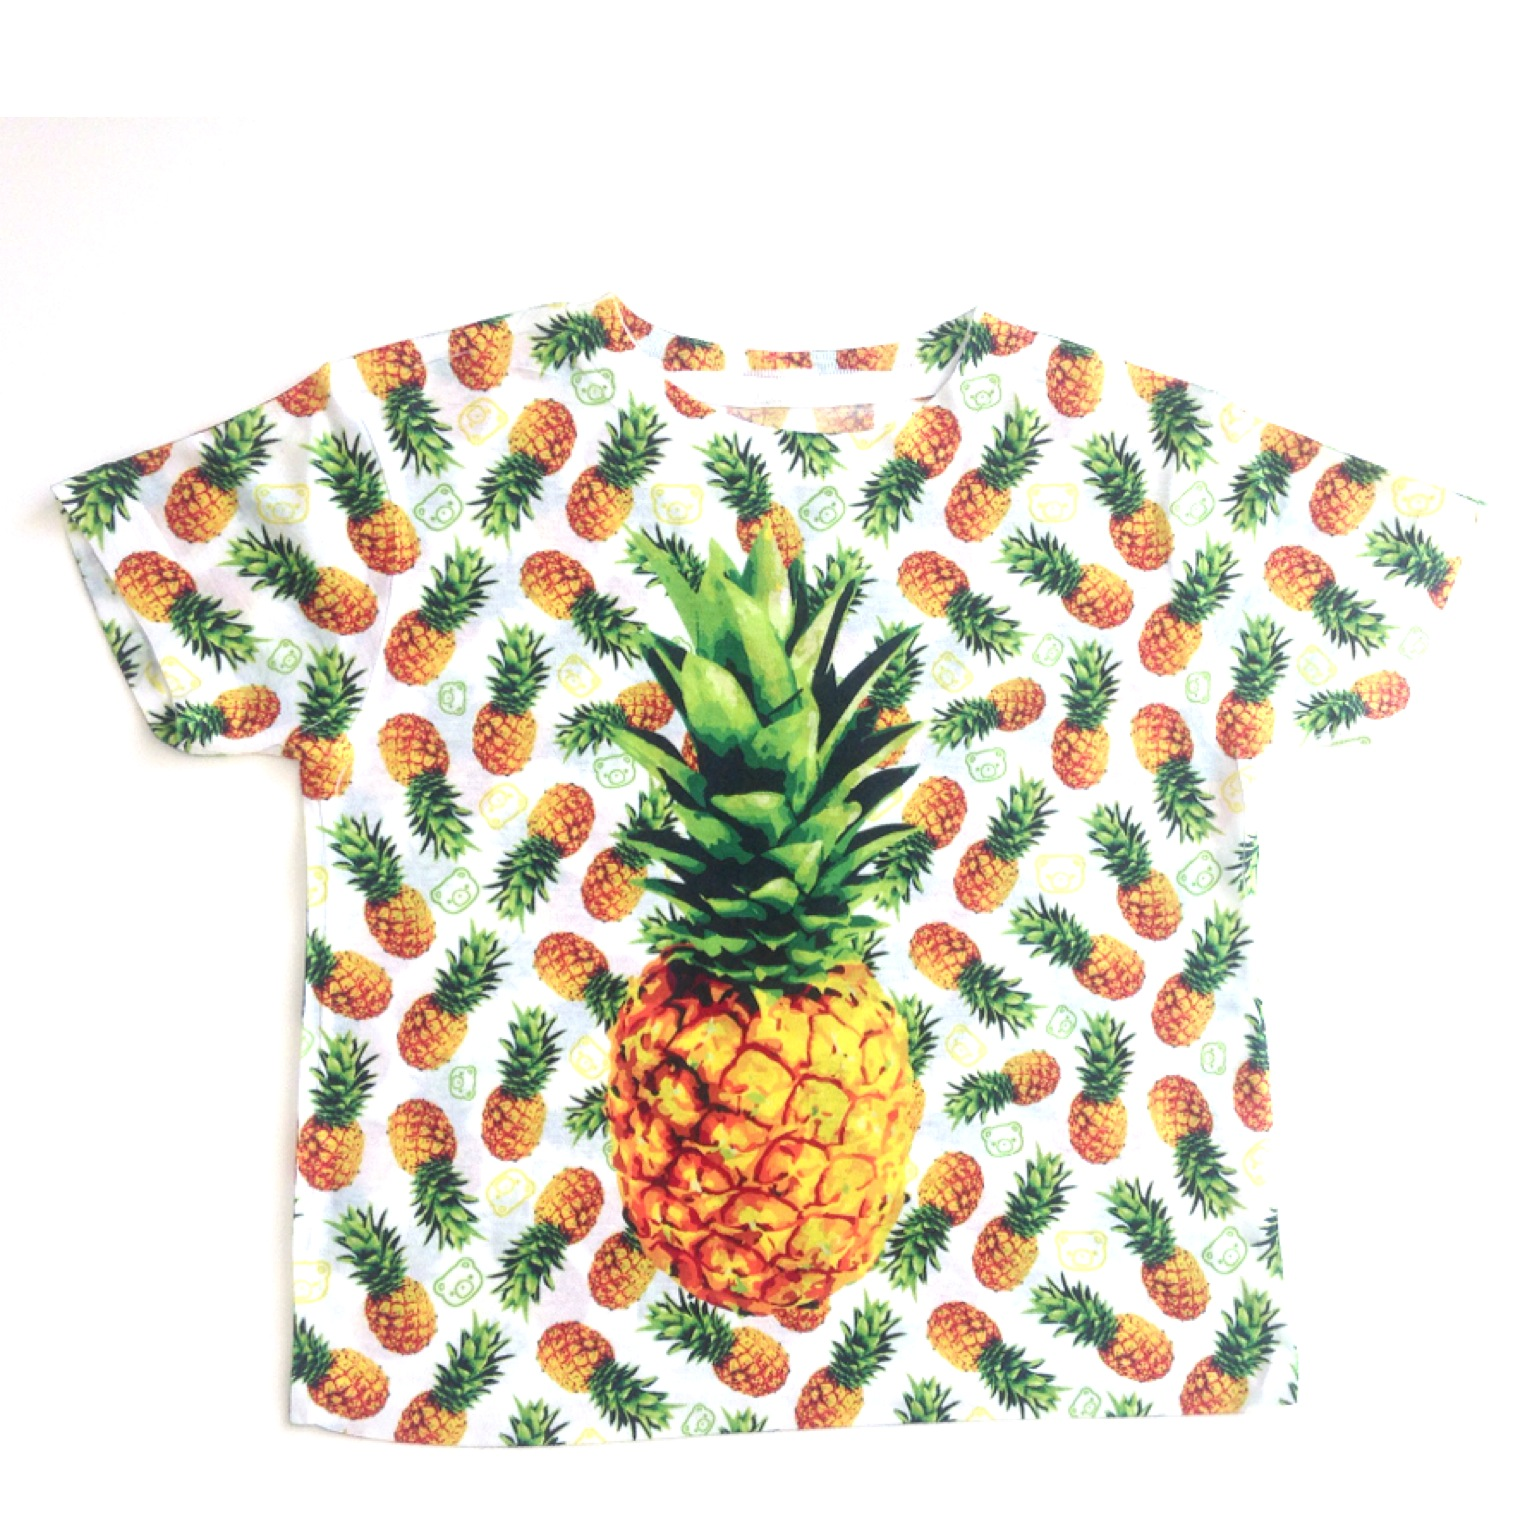 BabybearClothing | Pineapples & BEARS